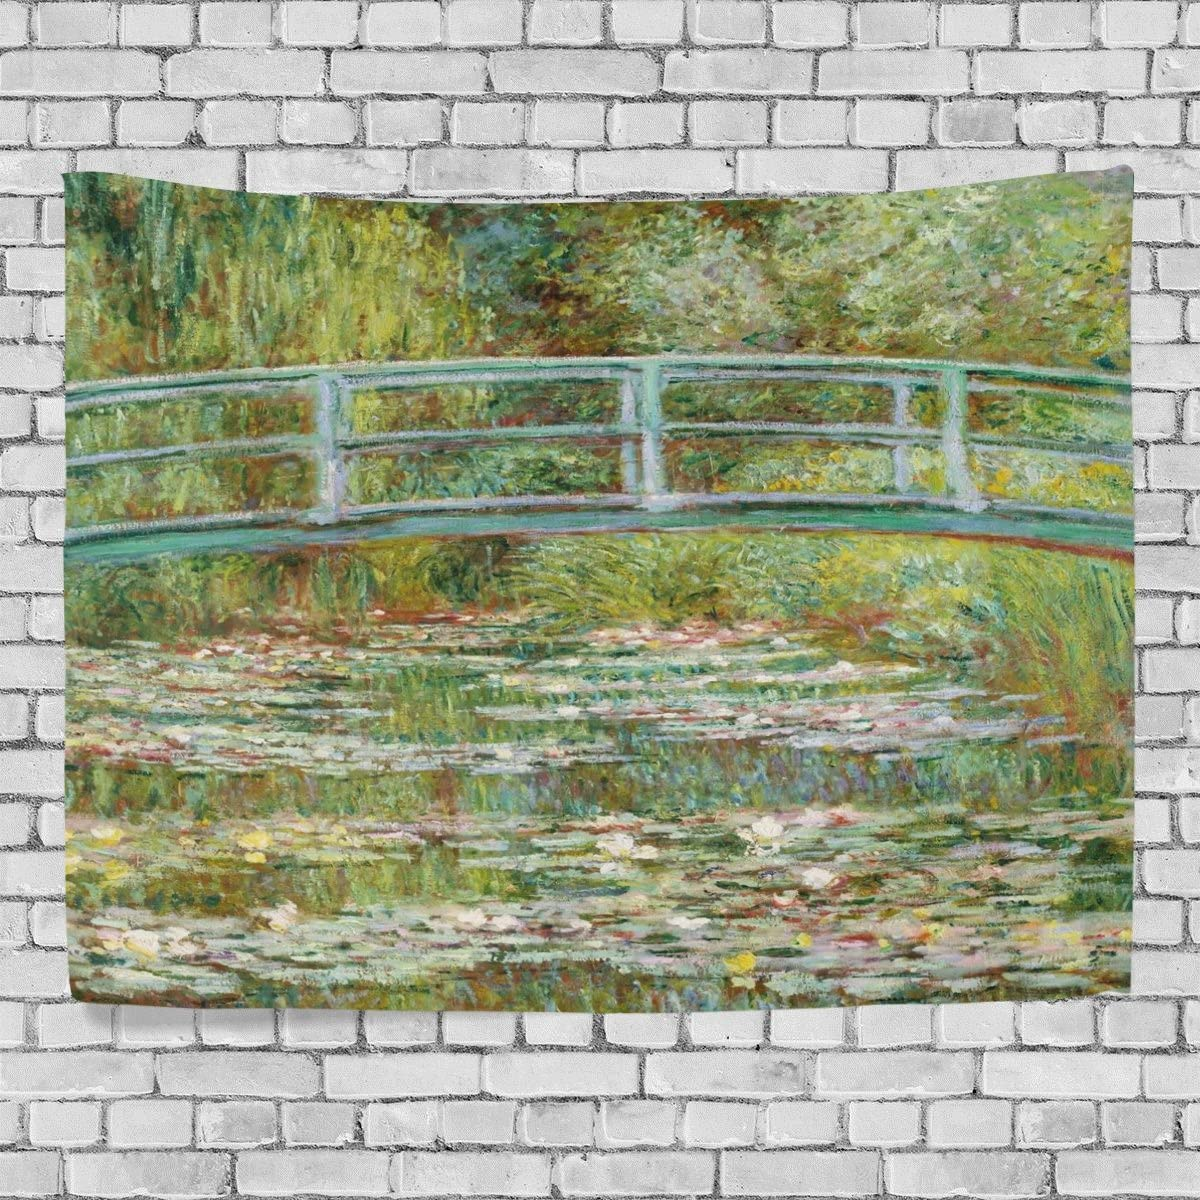 Monet Tapestry Wall Hanging Scenery Pattern Blanket for Wall Art Decor for Living Room and Bedroom 80 x 60 Inches